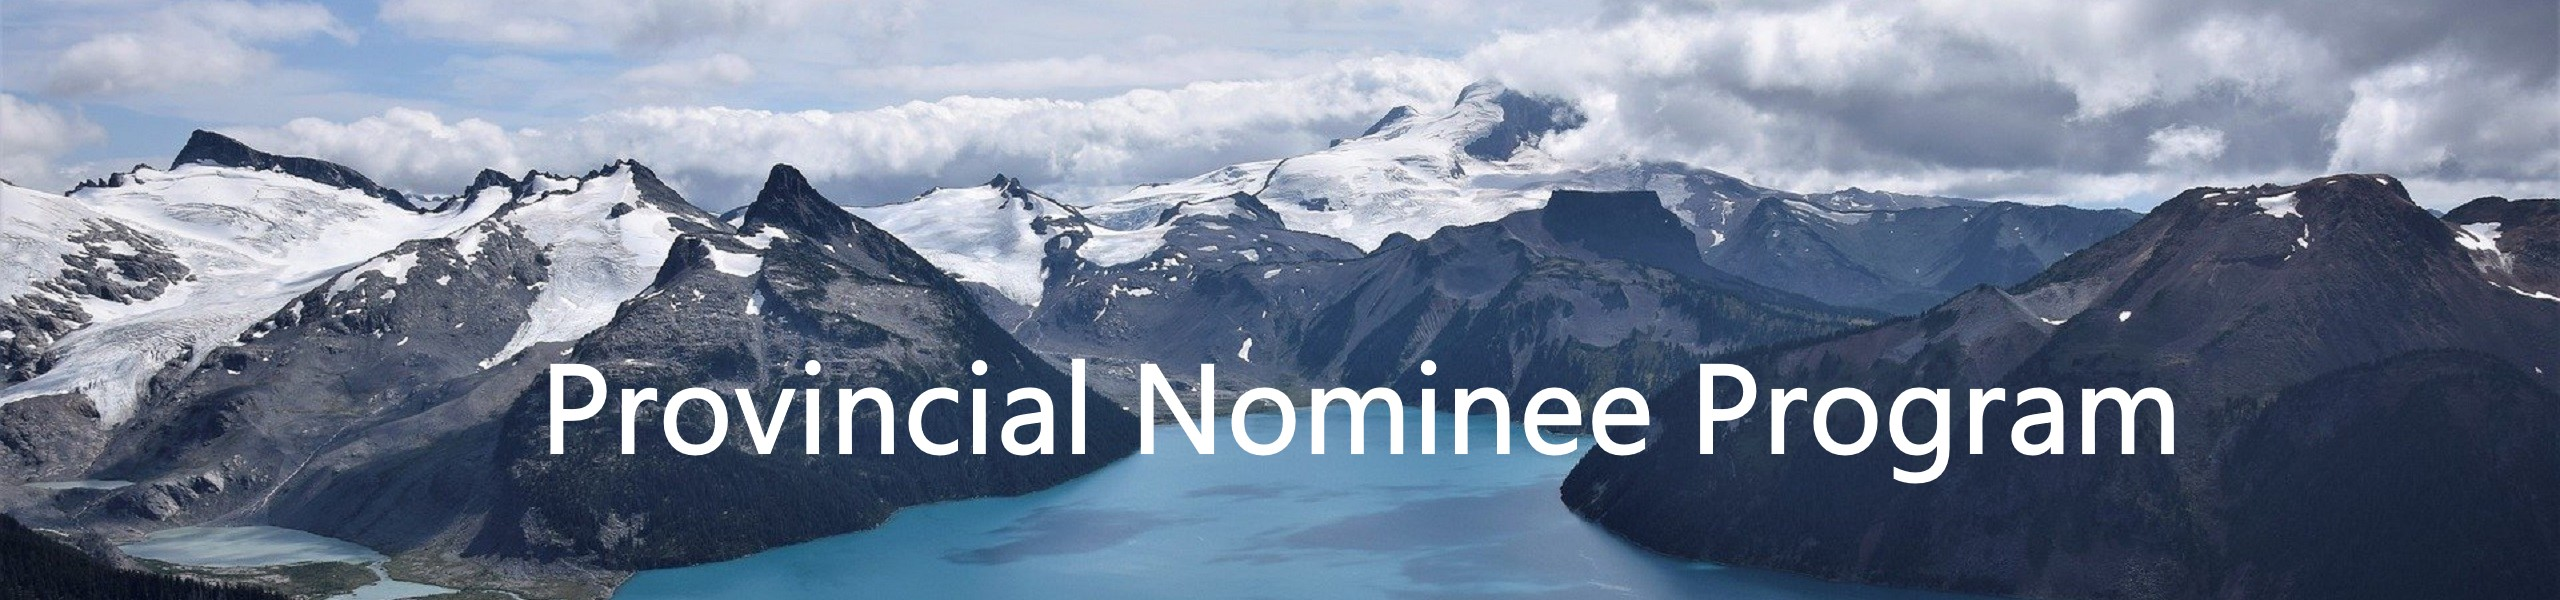 Canada Provincial Nominee Program - Turningstone Immigration Consulting